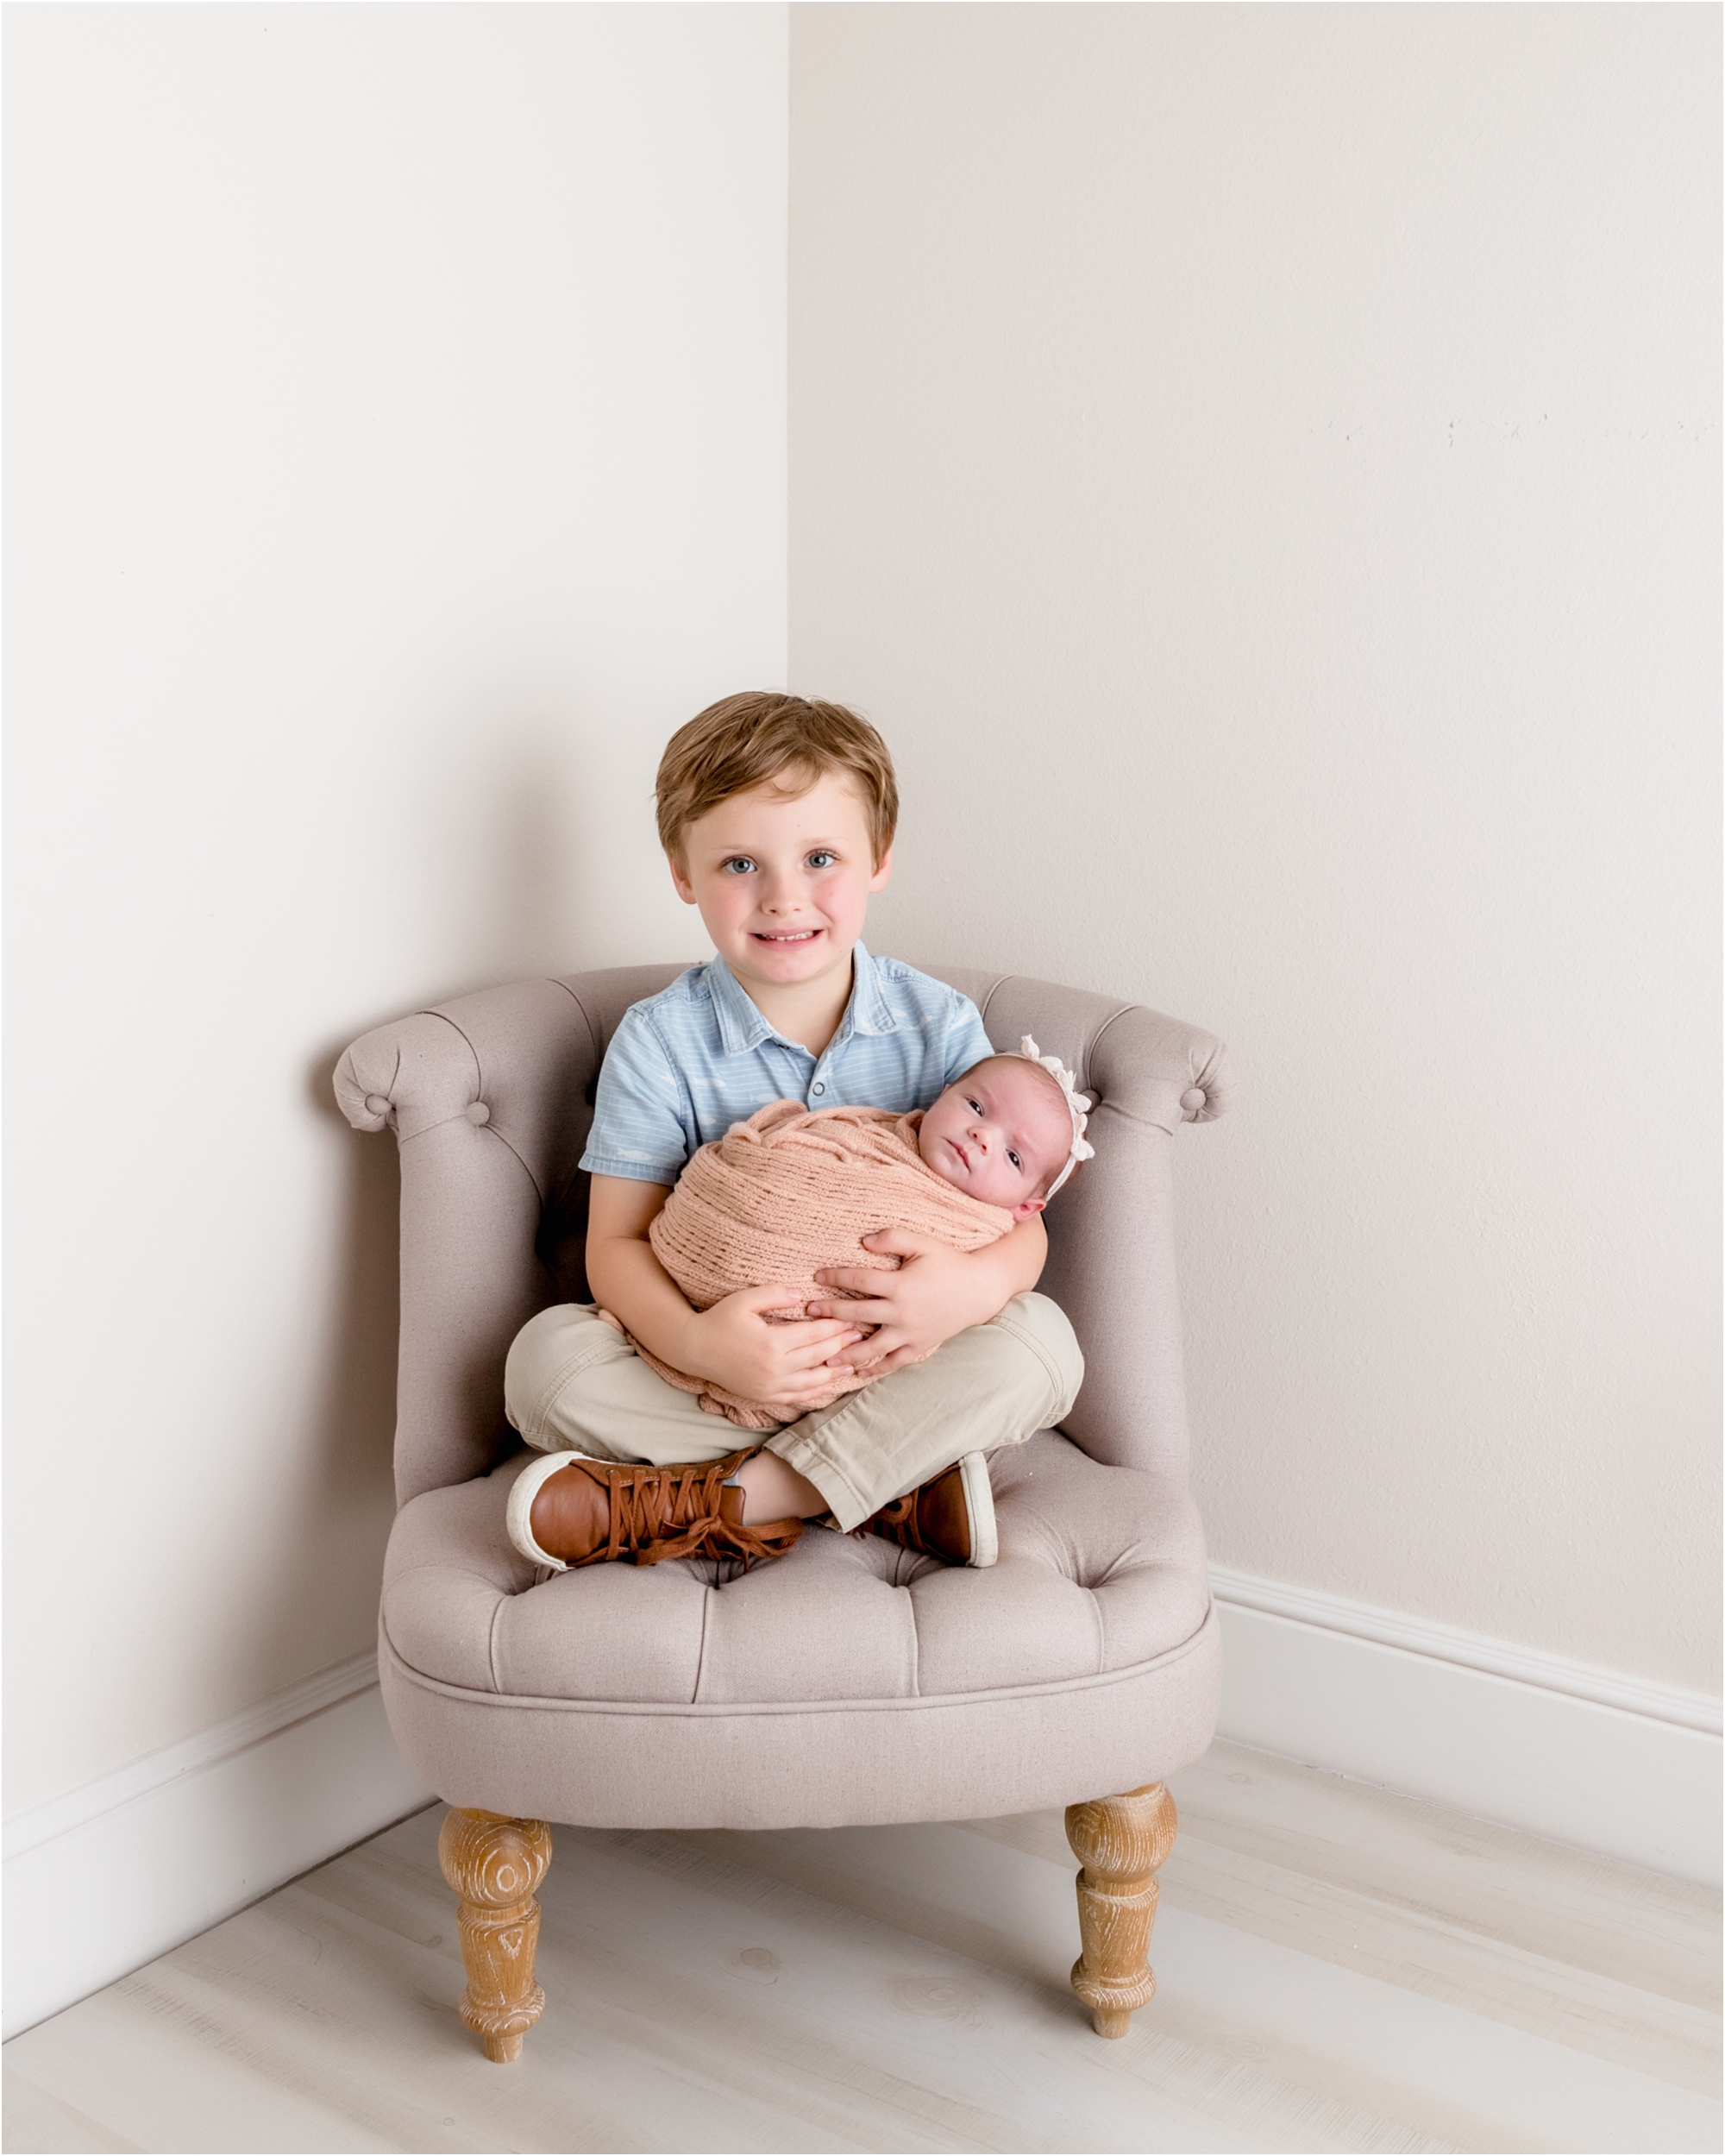 Big brother holding sister while smiling at the camera. Photo by Lifetime of Clicks Photography.